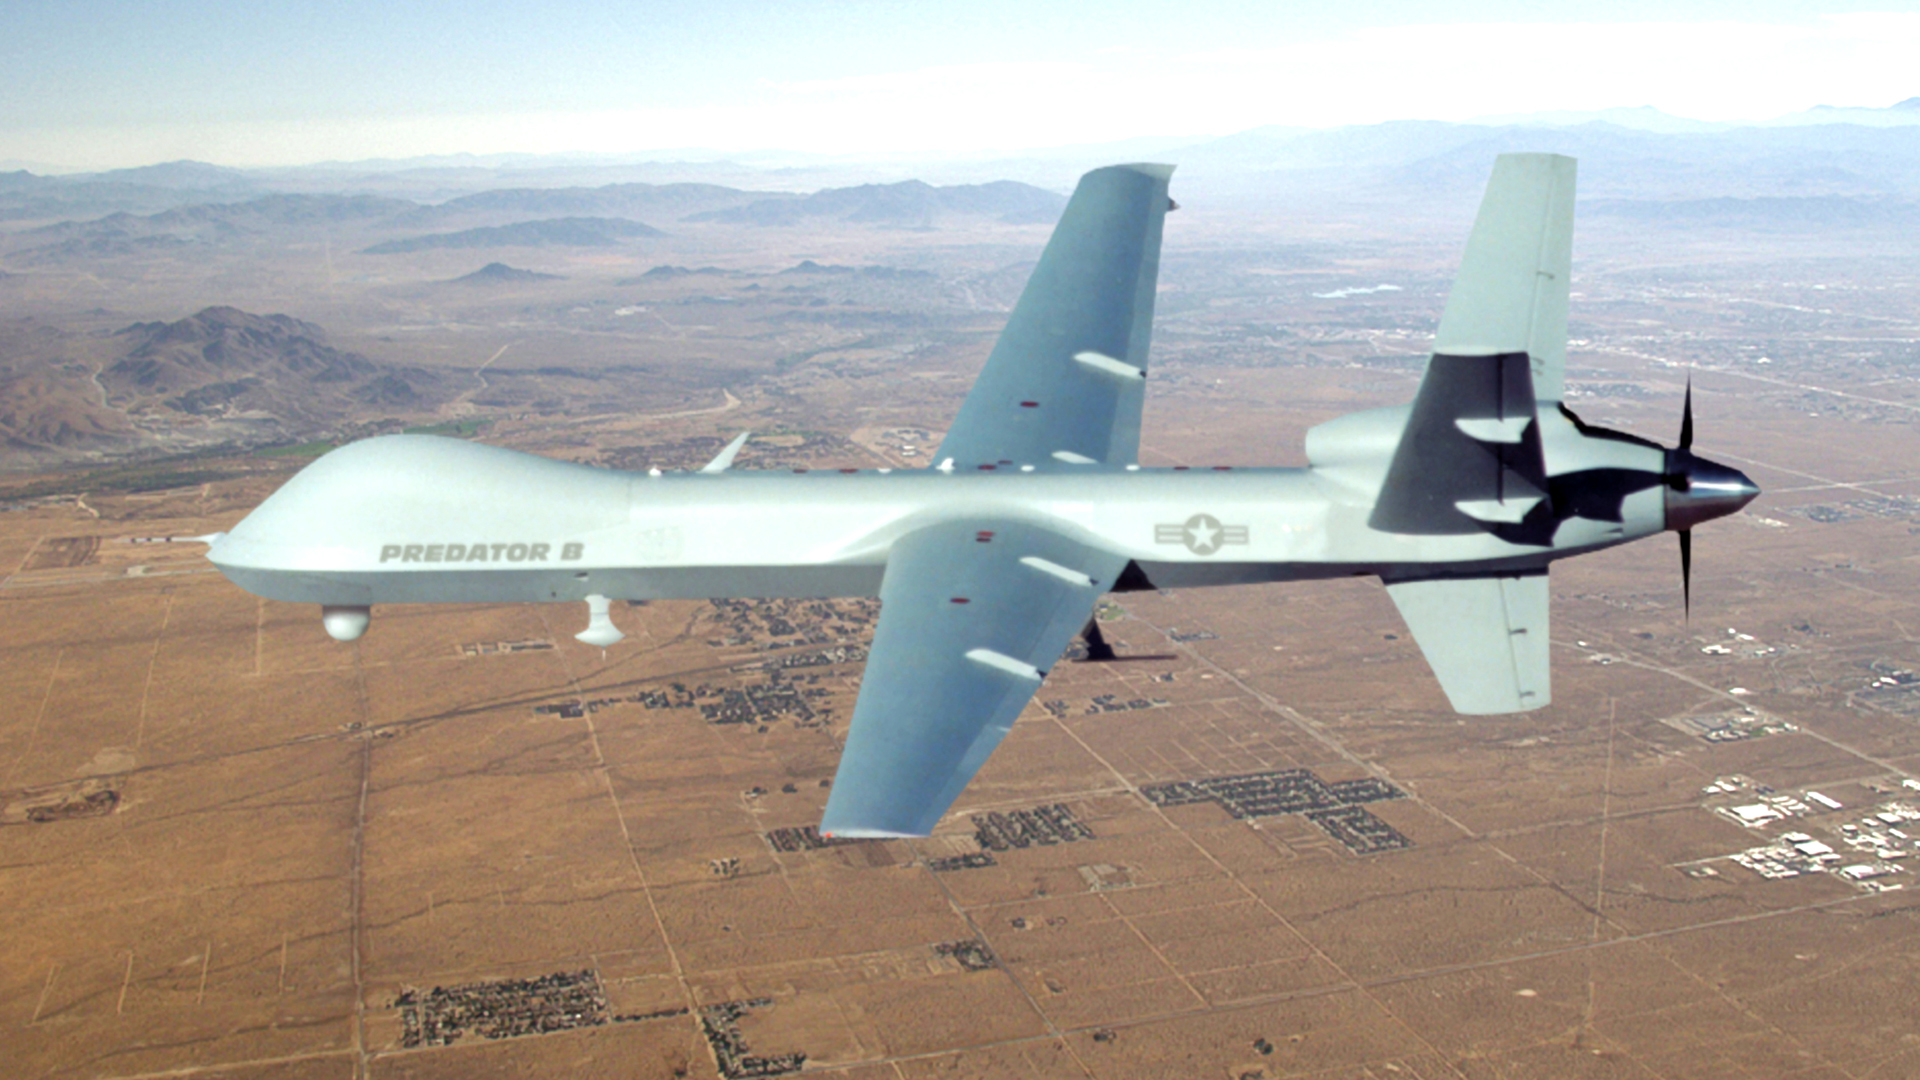 MQ-9 Reaper in flight. Image Courtesy of U.S. Air Force